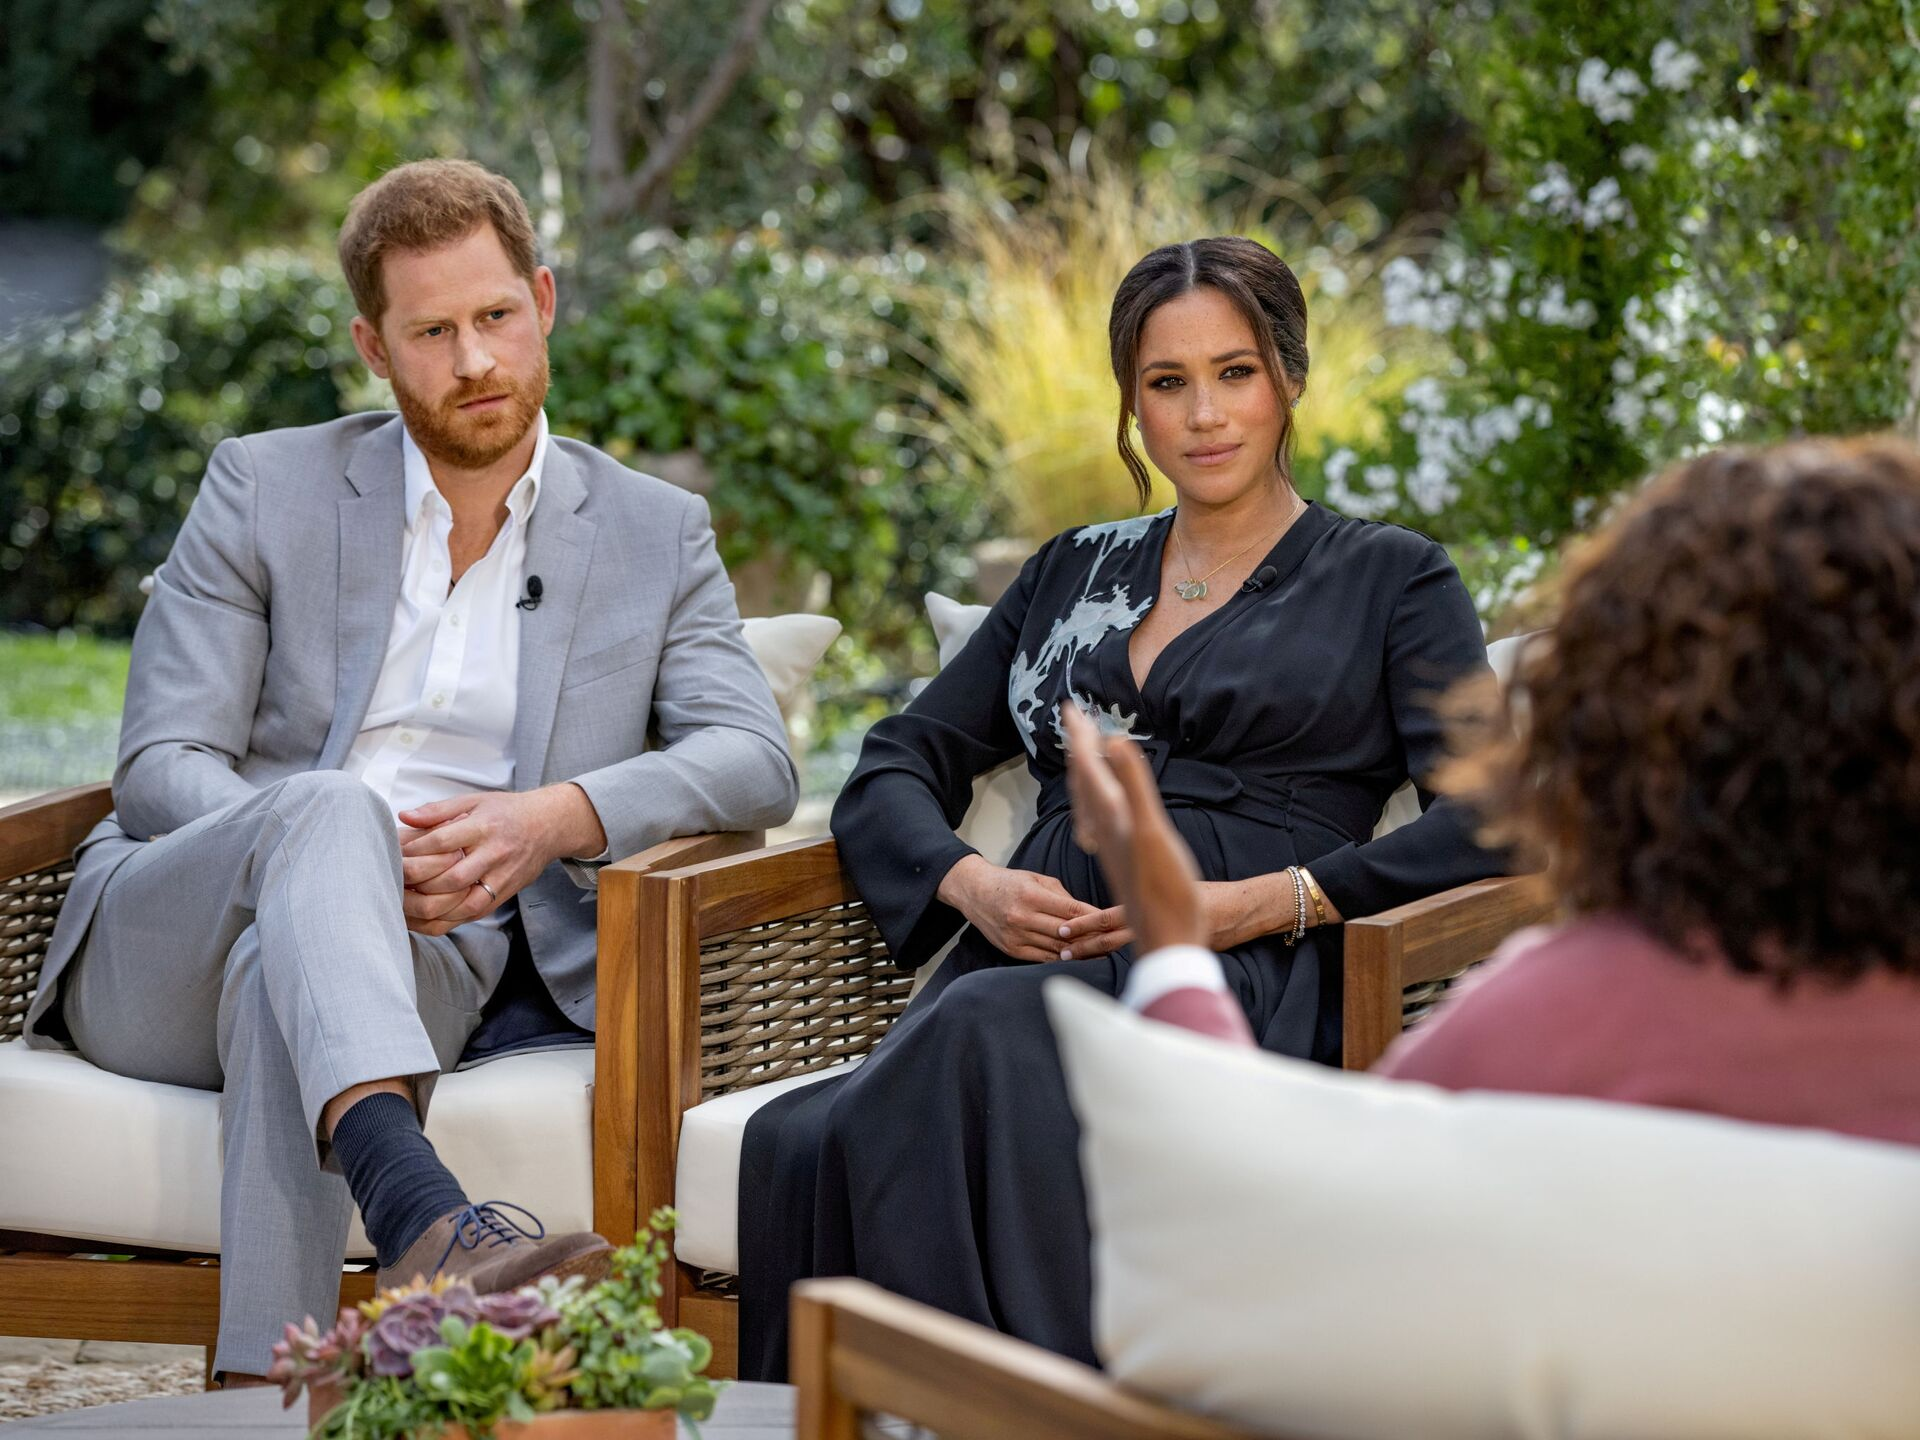 Britain's Prince Harry and Meghan, Duchess of Sussex, are interviewed by Oprah Winfrey in this undated handout photo. - Sputnik International, 1920, 17.09.2021